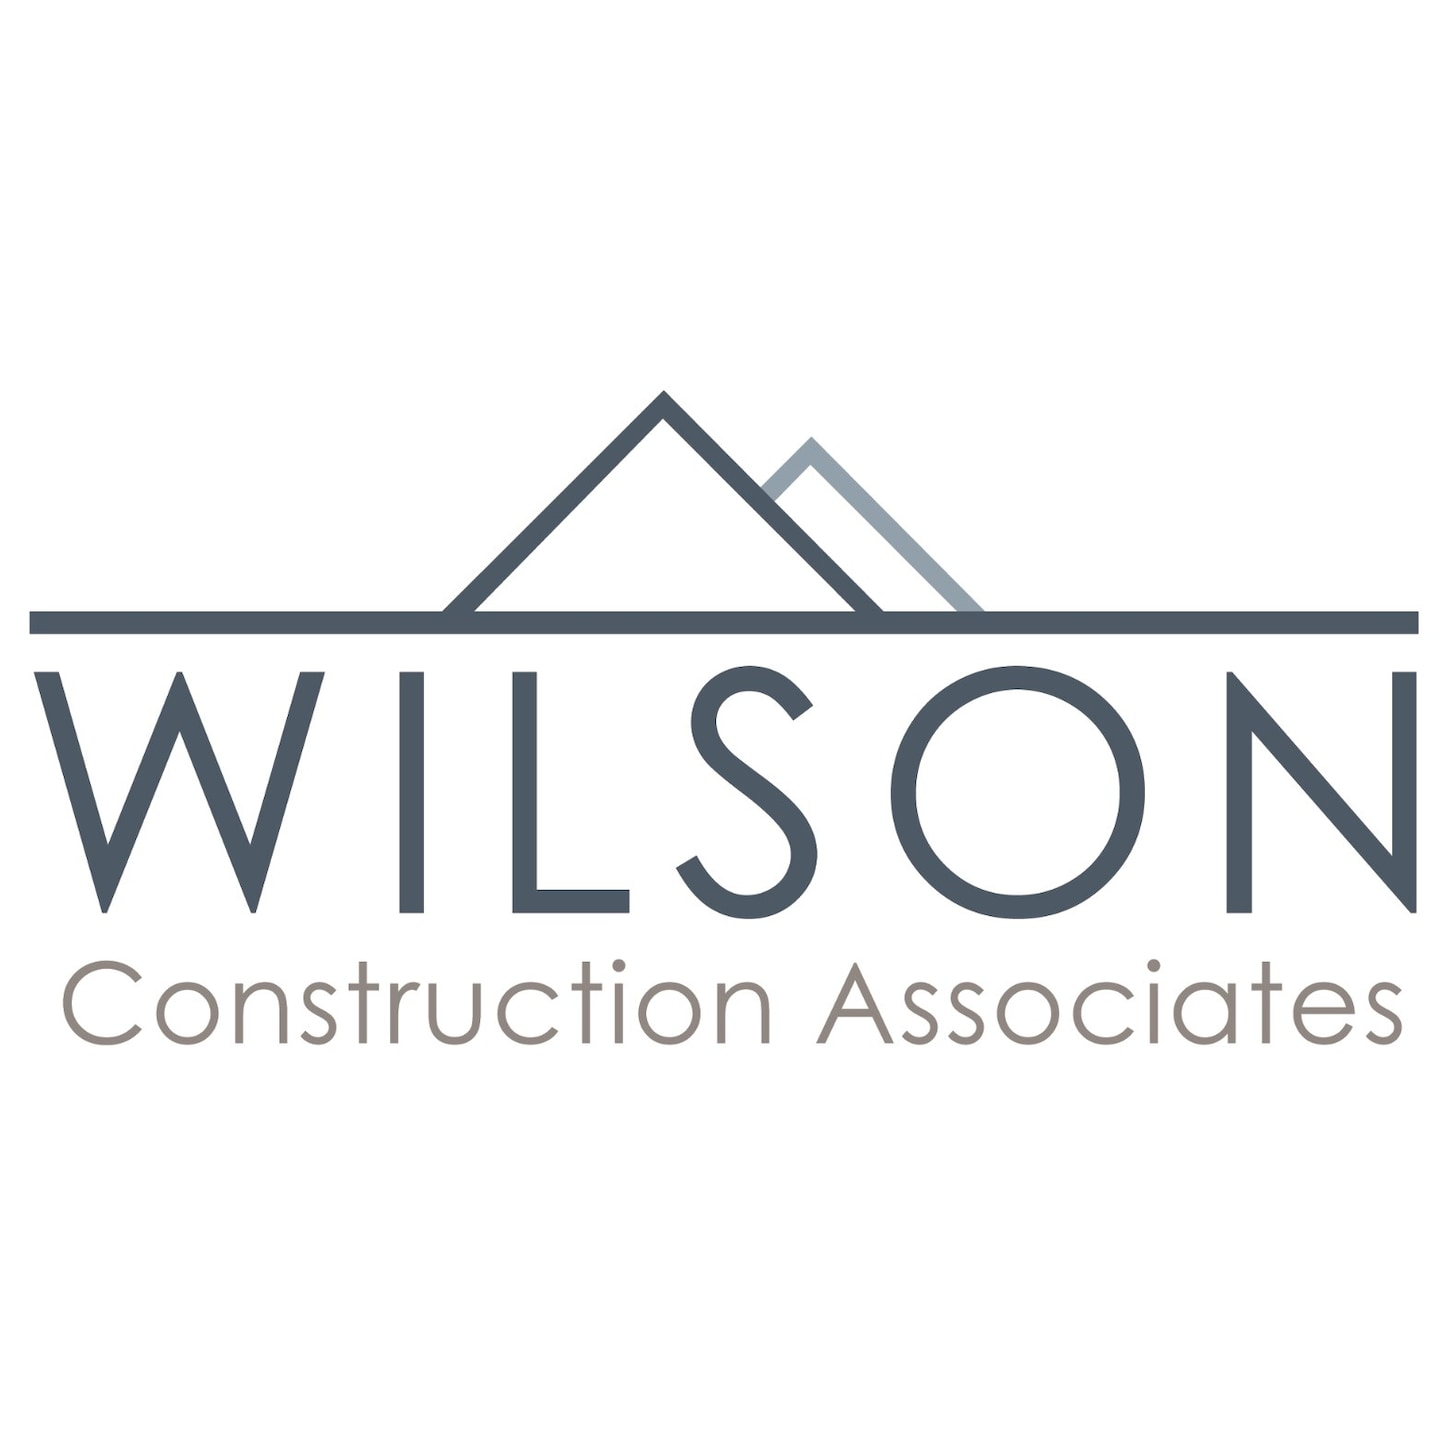 Wilson Construction Associates LLC